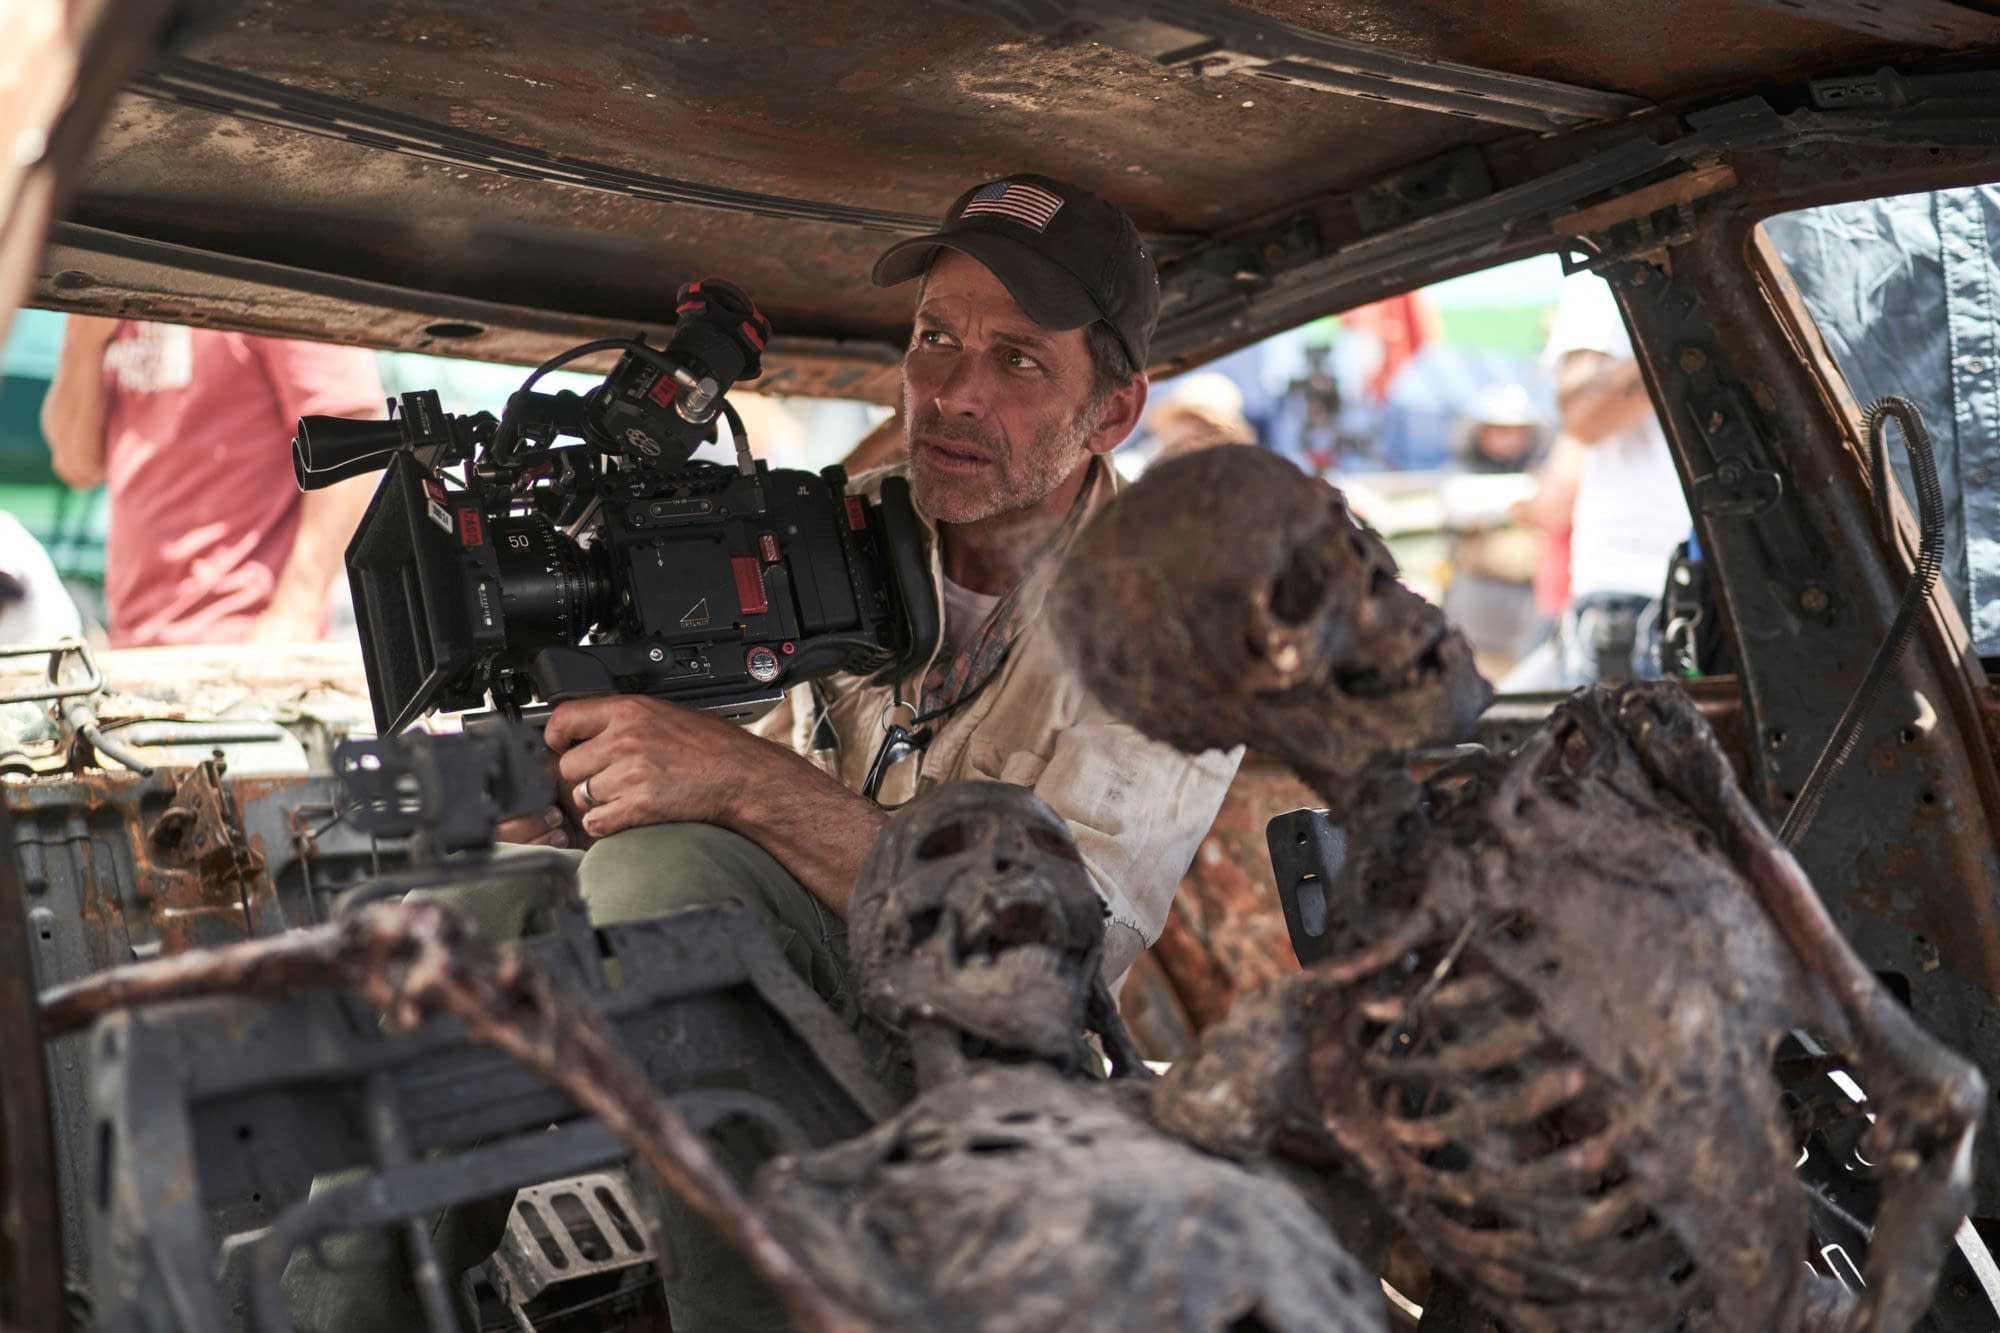 Four New Images Form Zack Snyder's Army Of The Dead Appear Online